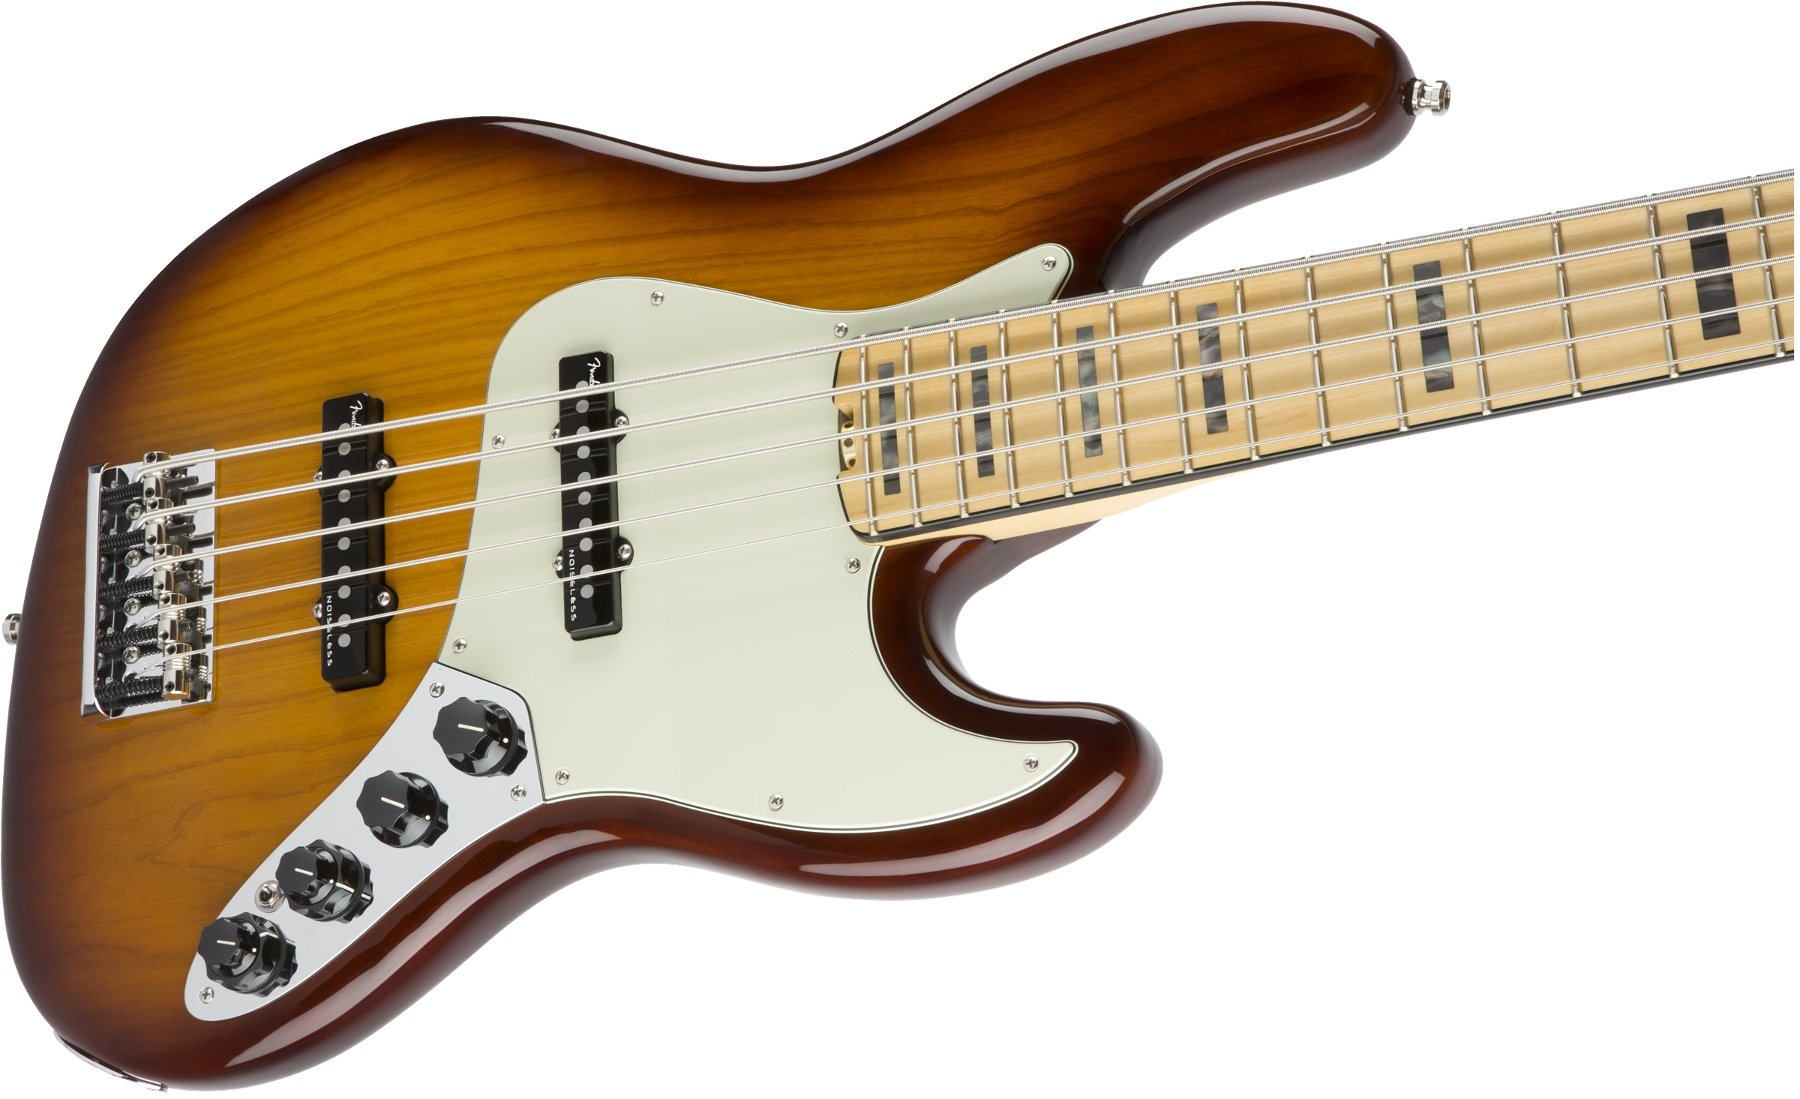 Jazz Bass Guitar with Ash Body and Maple Fingerboard